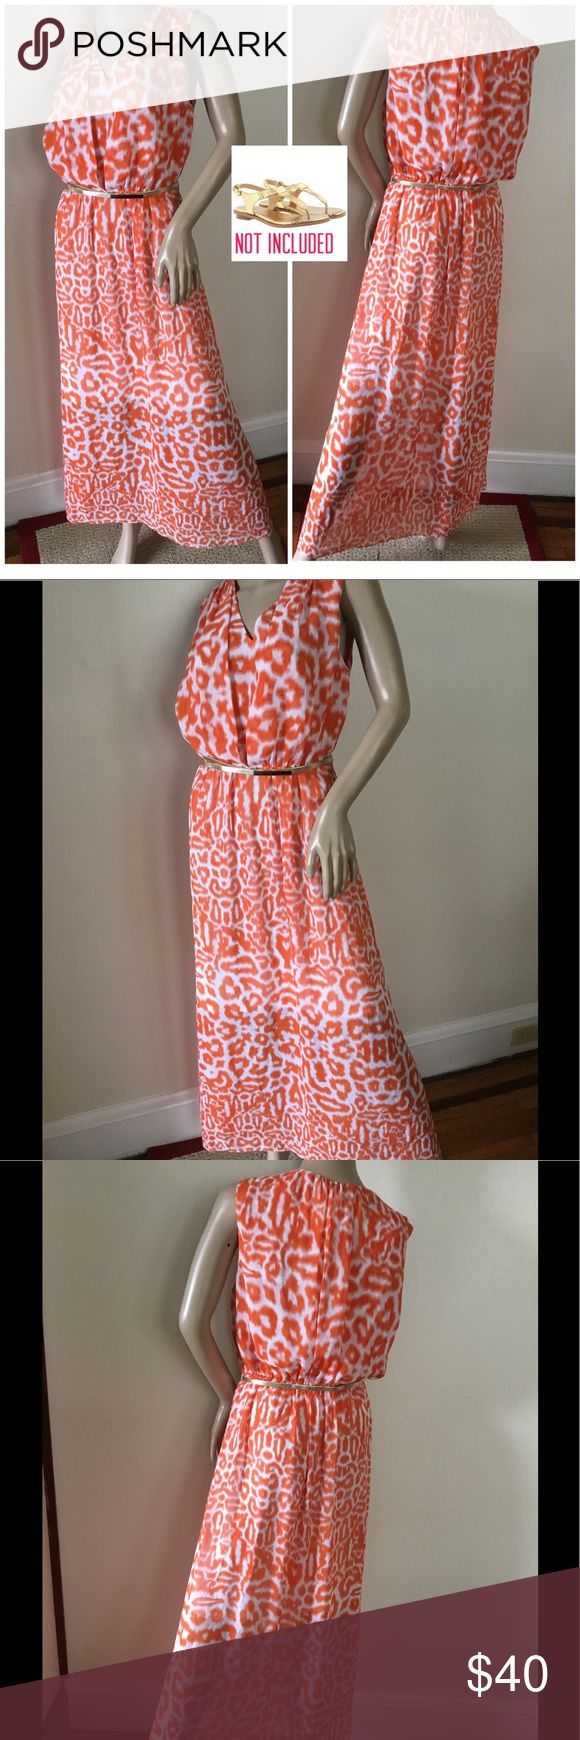 """A bold print knit maxi dress with playful style. A bold, ikat-style print infuses this knit maxi dress with playful style. V neckline Faux front drape & Blossom Back, Sleeveless, Concealed zip at side, Maxi silhouette. Mini skirt full lined, Hits at ankles, Wrinkles free, light weight, perfect for travelers, Chiffon fabrication, Thin gold tone belt at waist, Add gold metallic sandals to the mix for the weekend! LONG 54""""; BUST 18""""; ELASTICIZED WAIST 13"""" to 16""""  LOOK AT THE PICTURES,  THEY ARE…"""